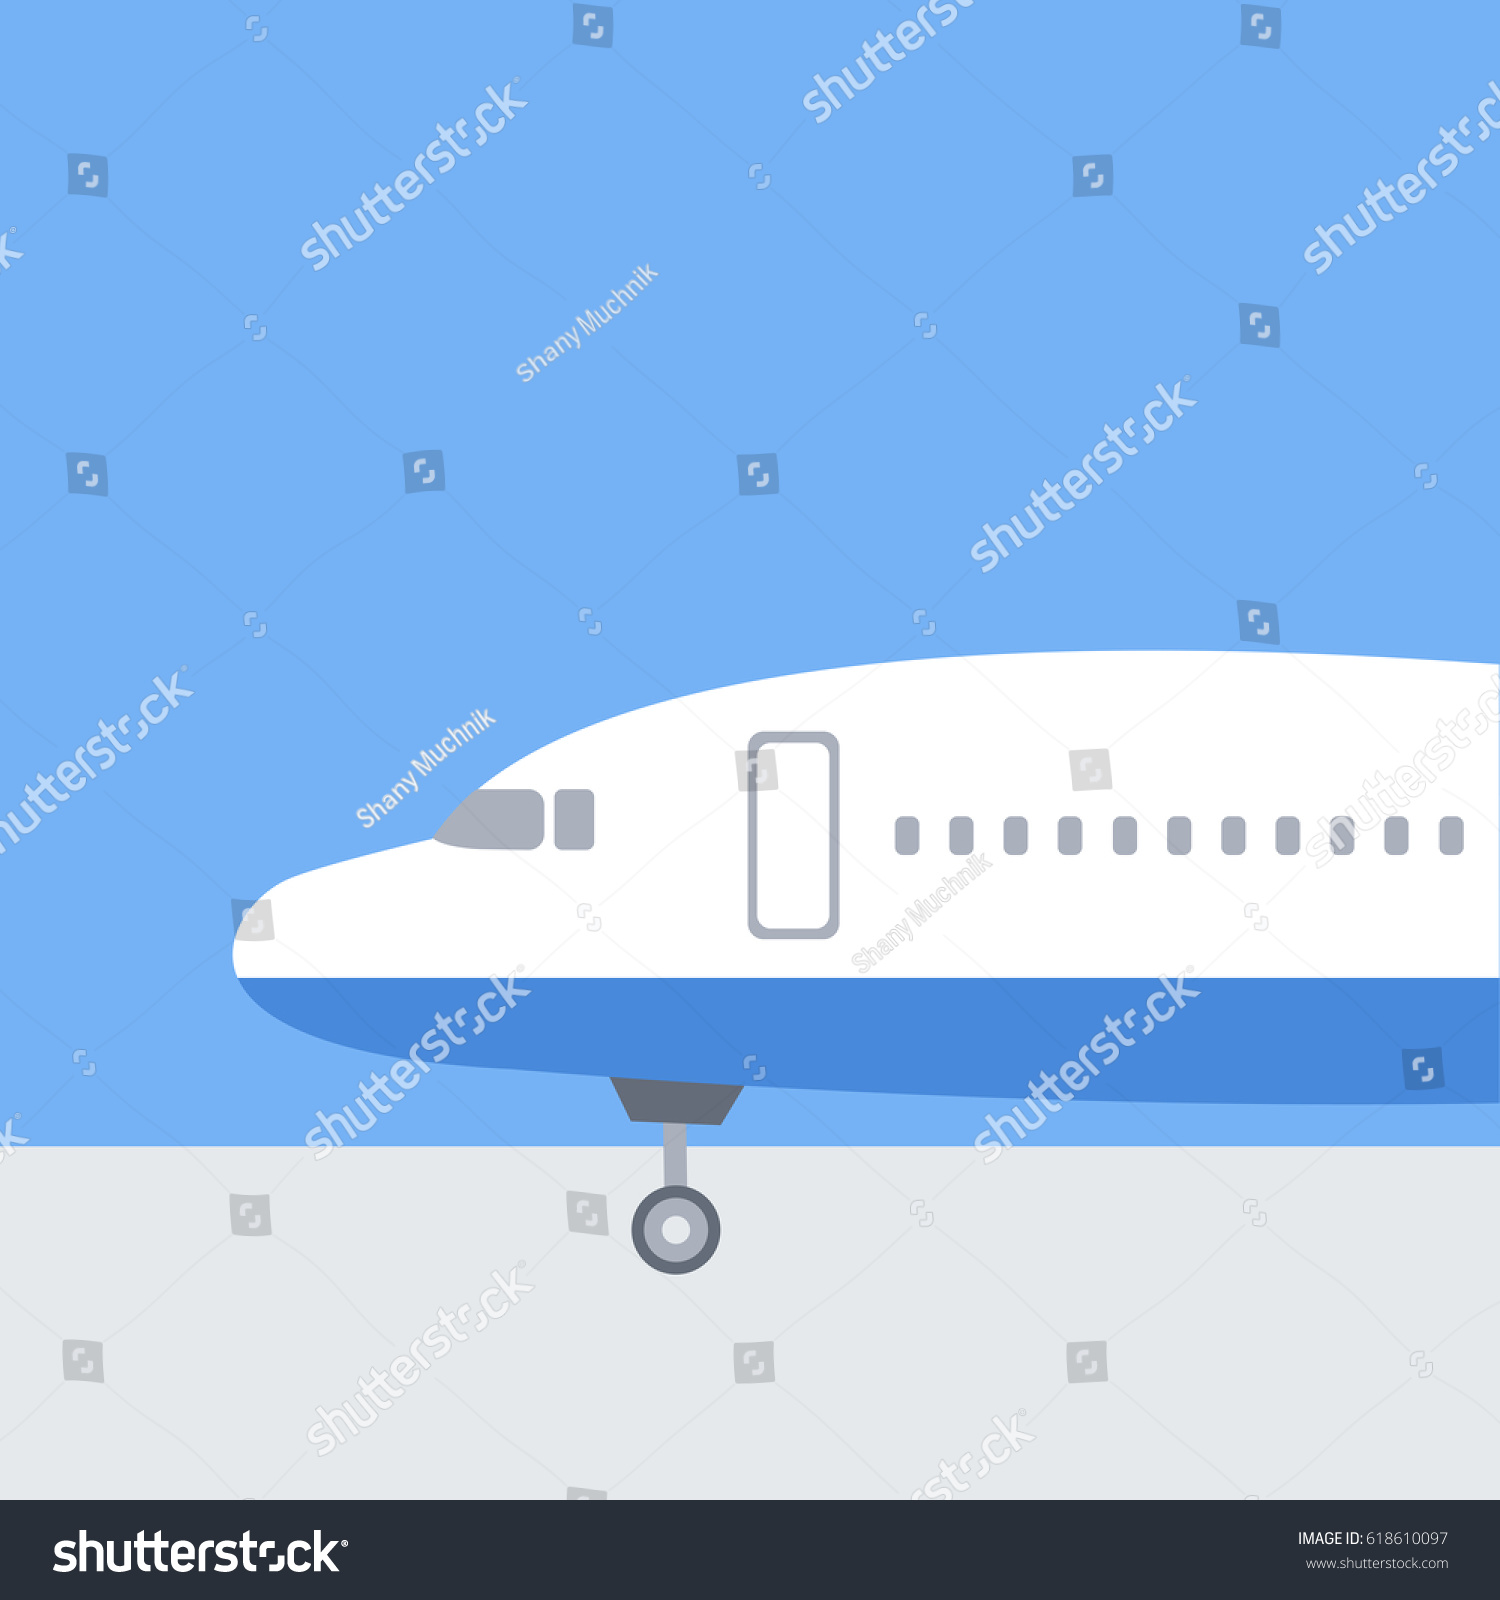 Front part airplane vector illustration parking stock vector front part of airplane vector illustration parking landed in airport blue flat design background jeuxipadfo Gallery